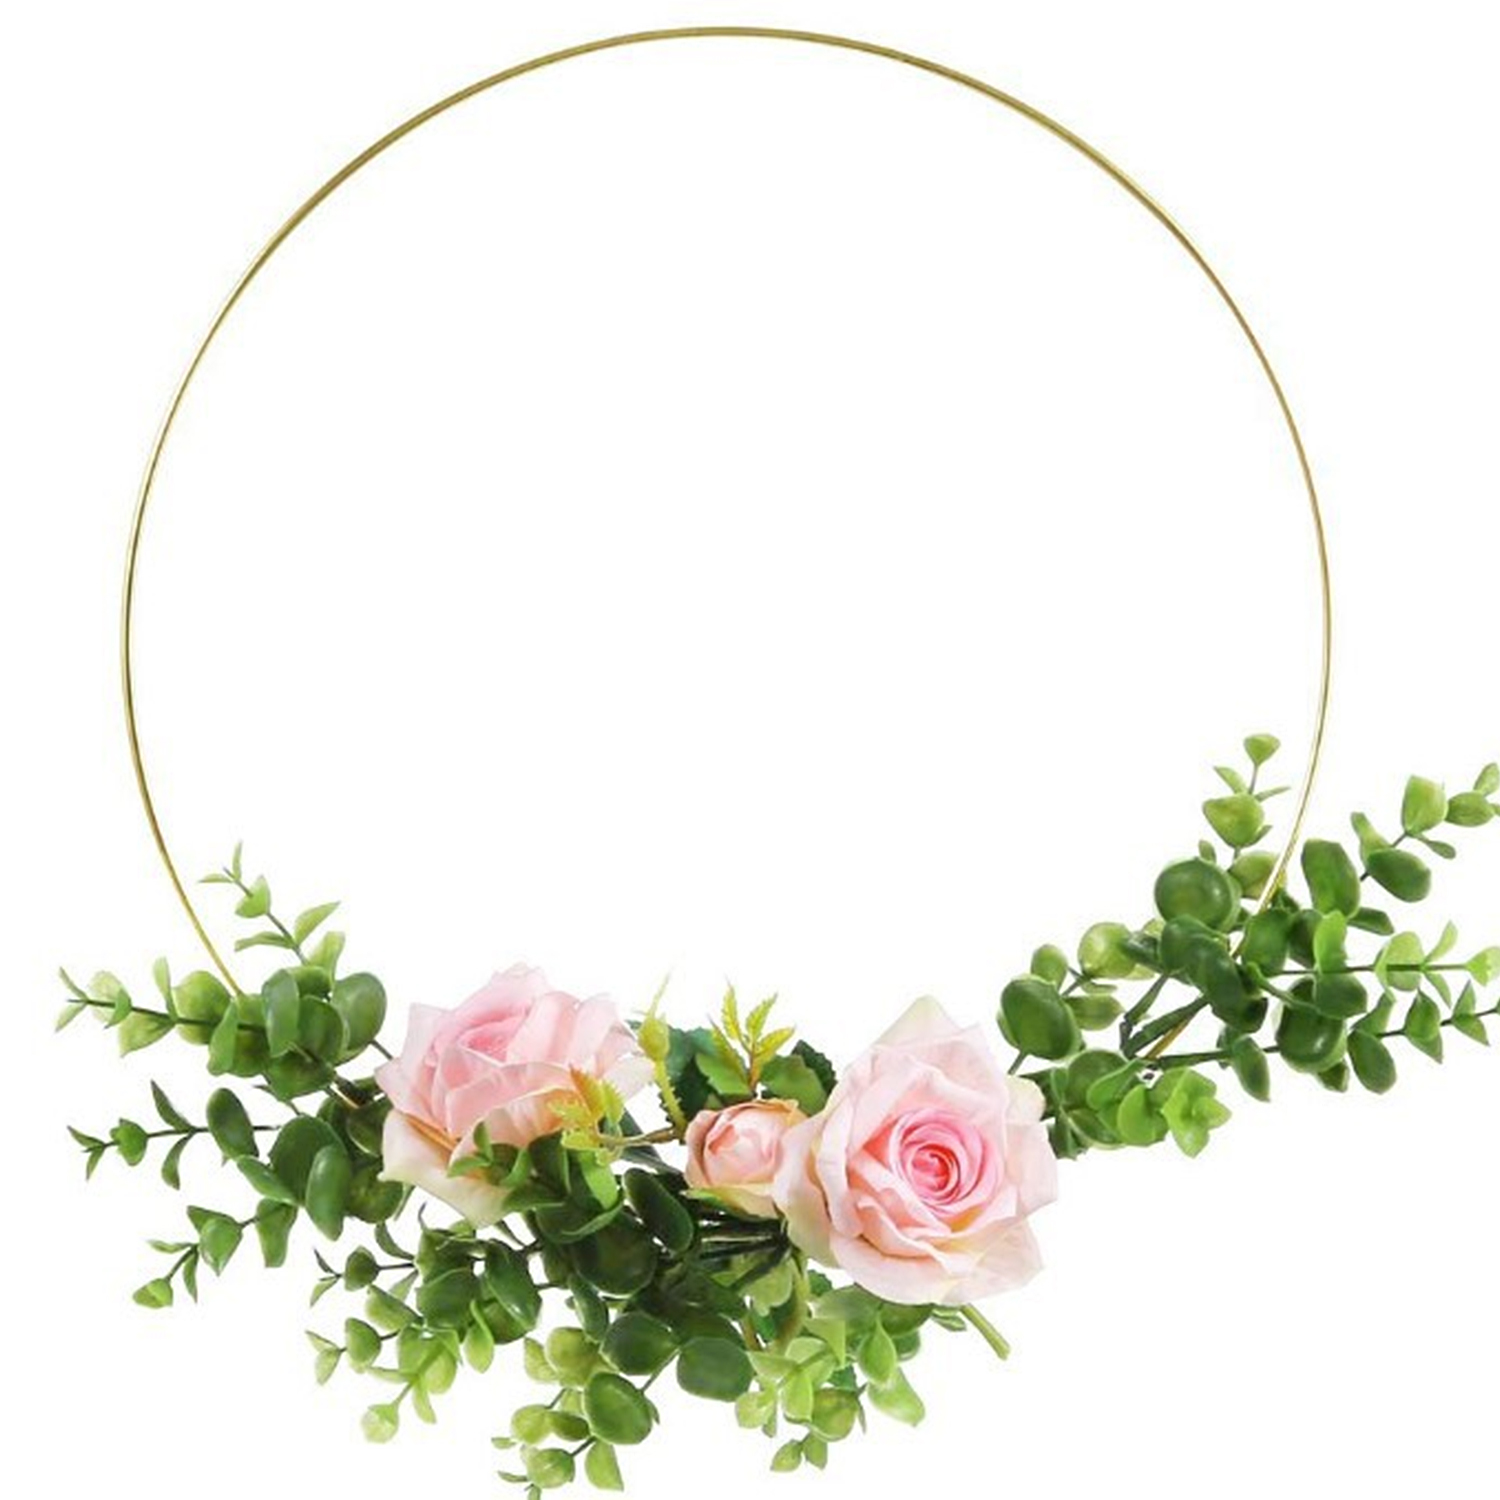 Metal Rings Hoops DIY Craft Supplies For Dream Catcher Dreamcatchers Wreaths Macrame Projects Wedding Decoration Dia 30/35/40CM